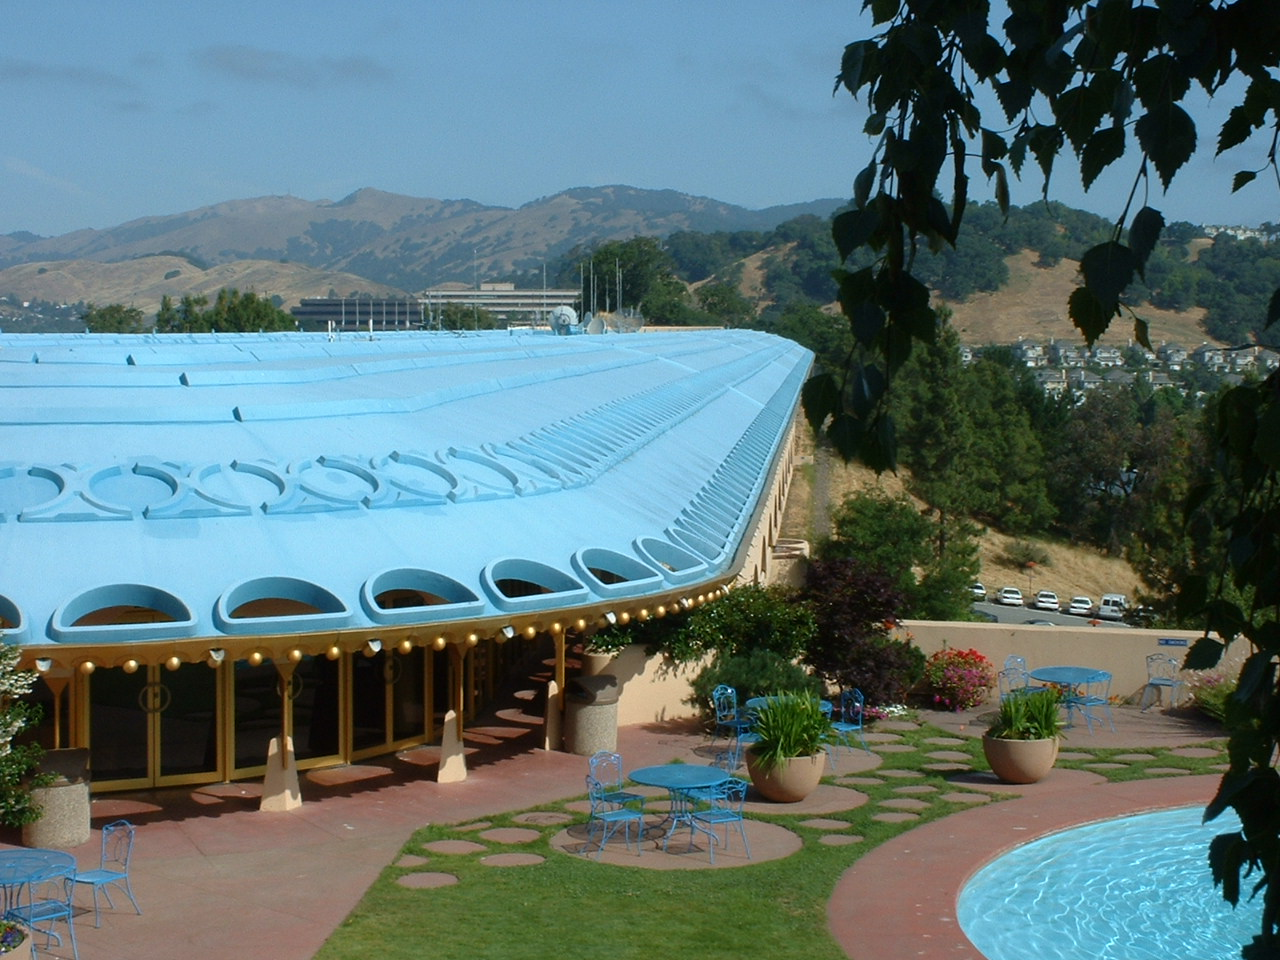 Marin county civic center